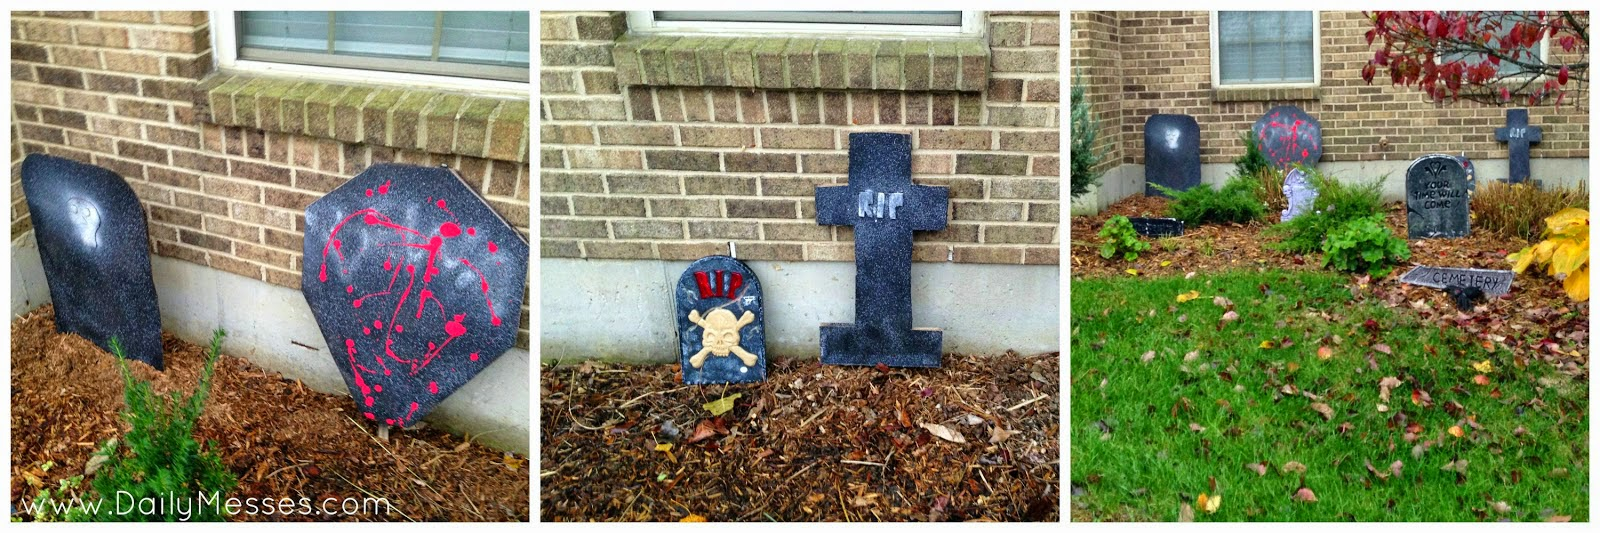 Daily Messes: Homemade Tombstones